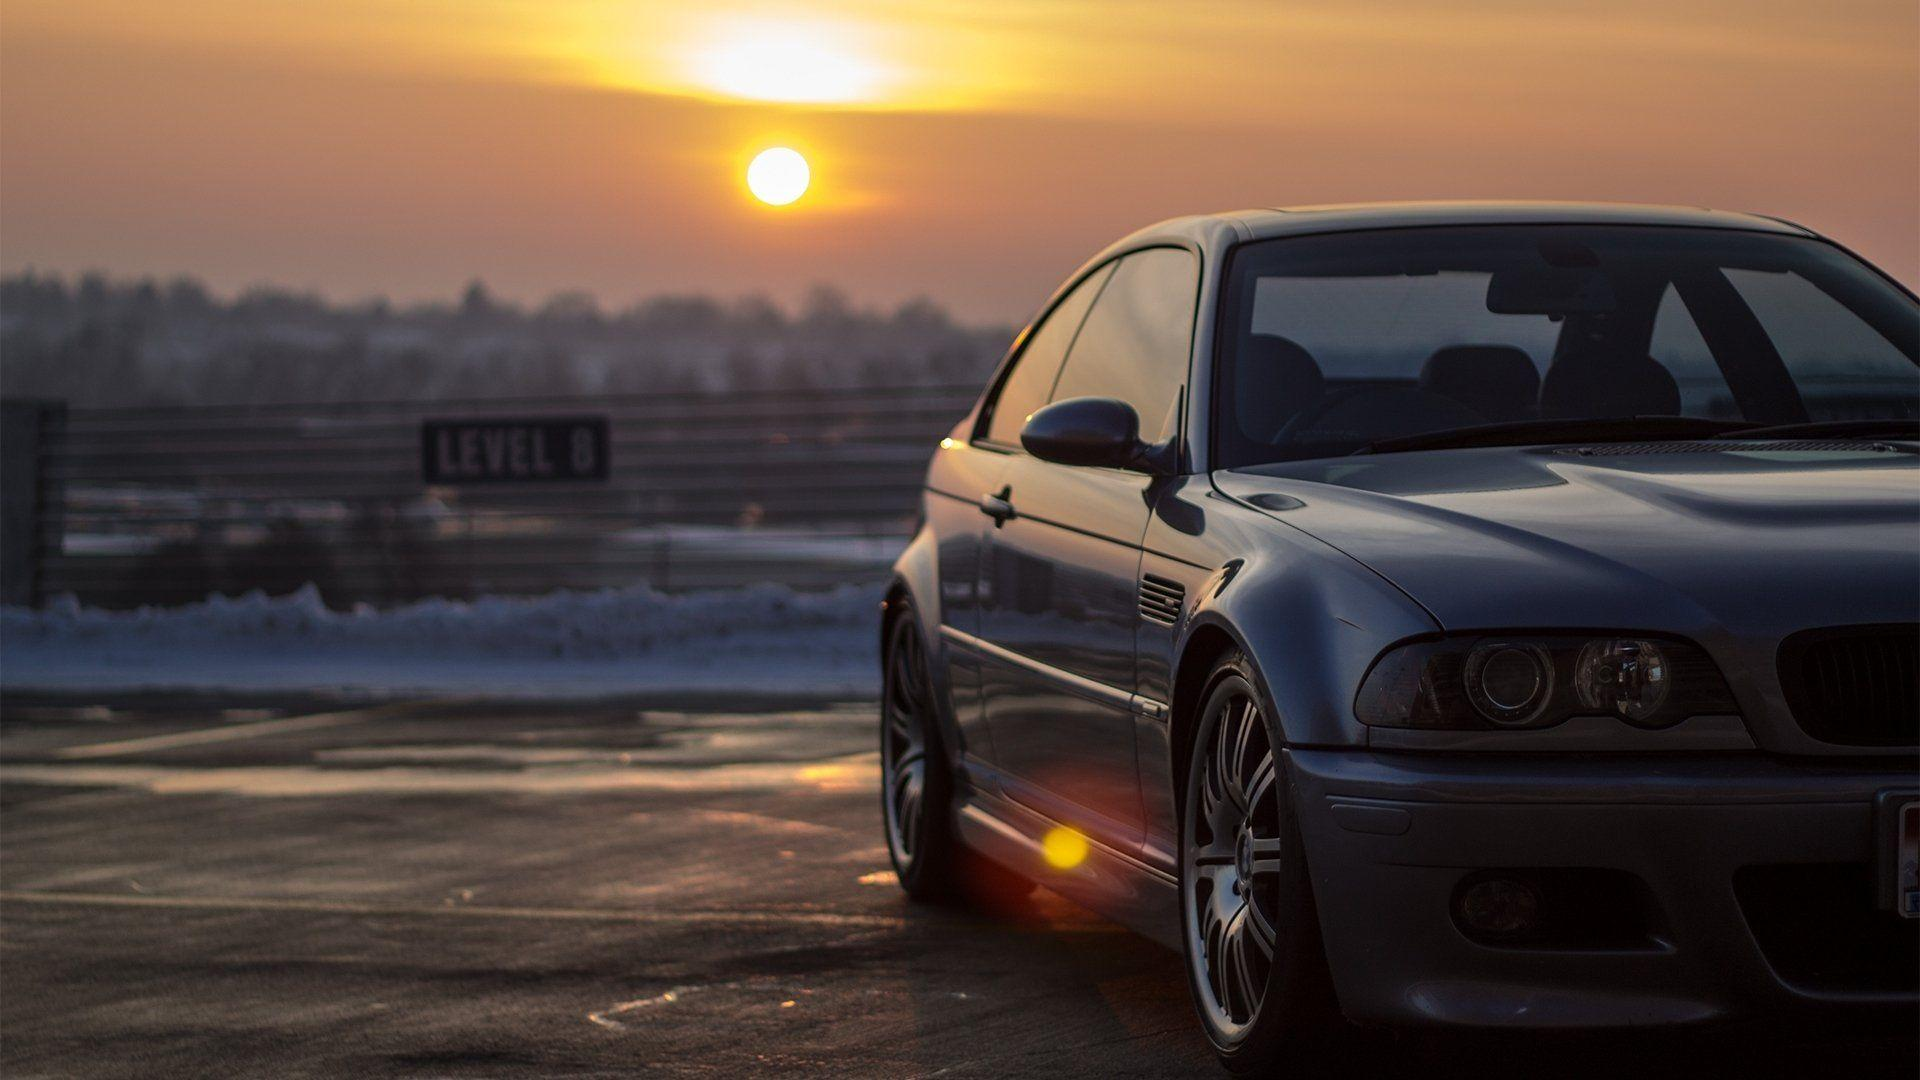 e46 wallpapers